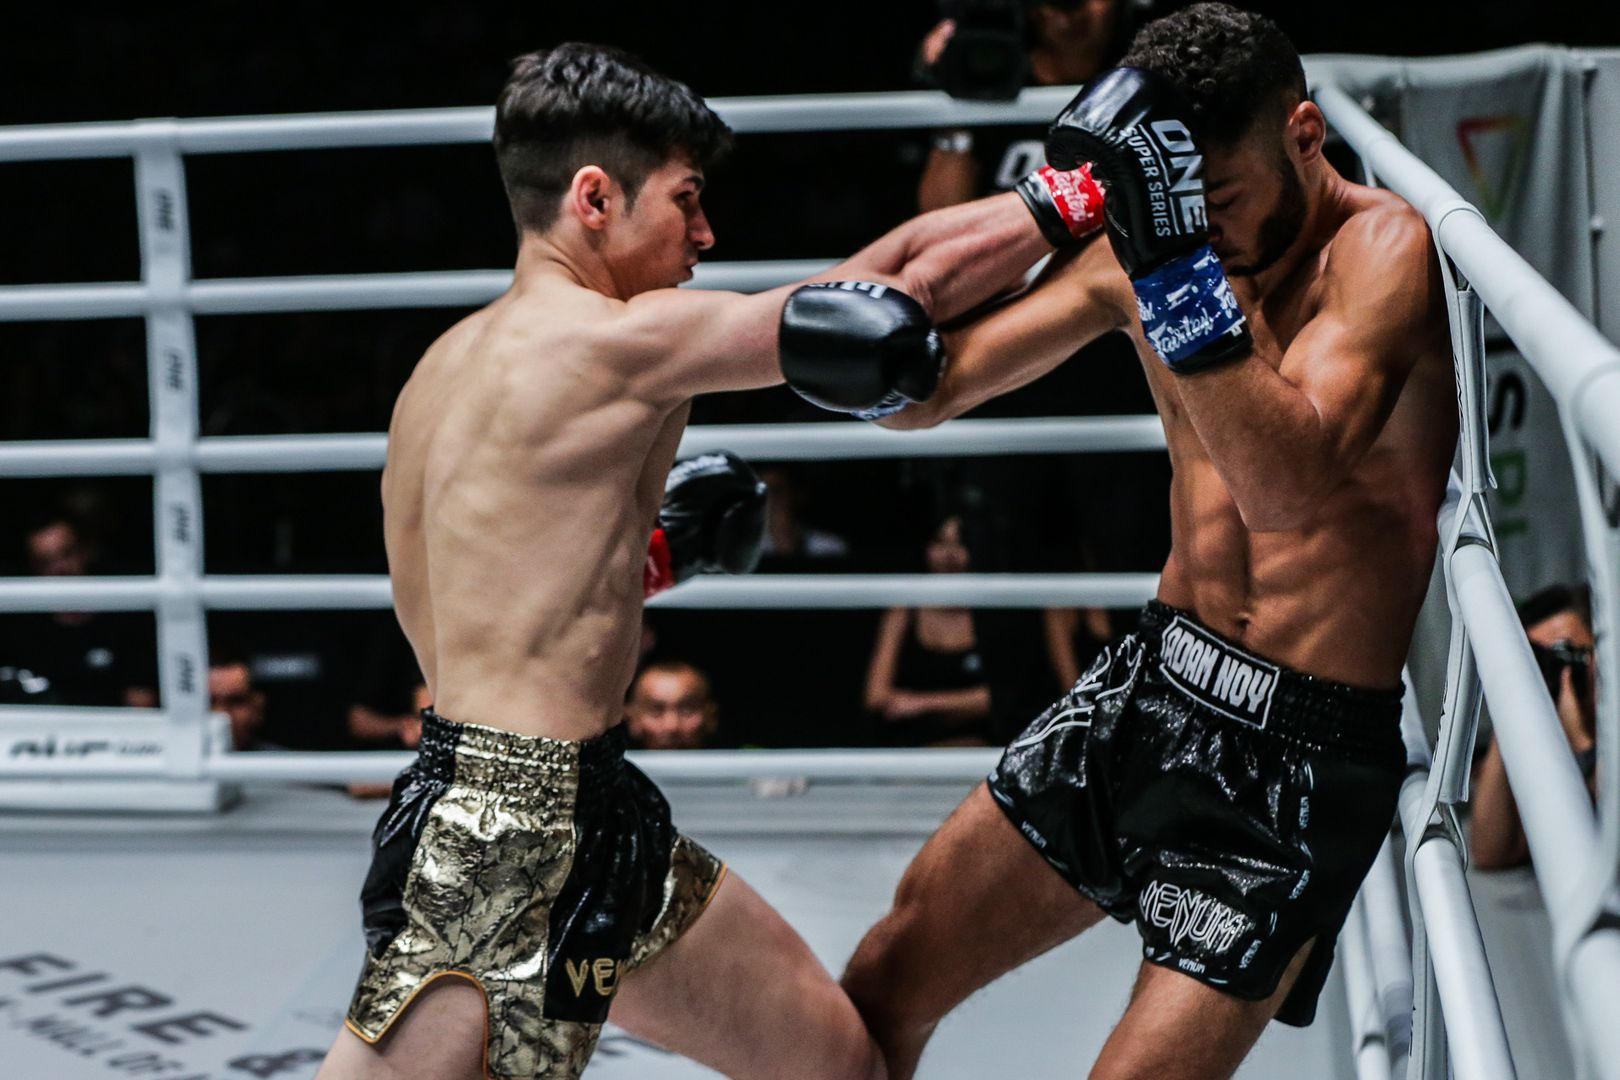 French Muay Thai fighter Leo Pinto hits a cross